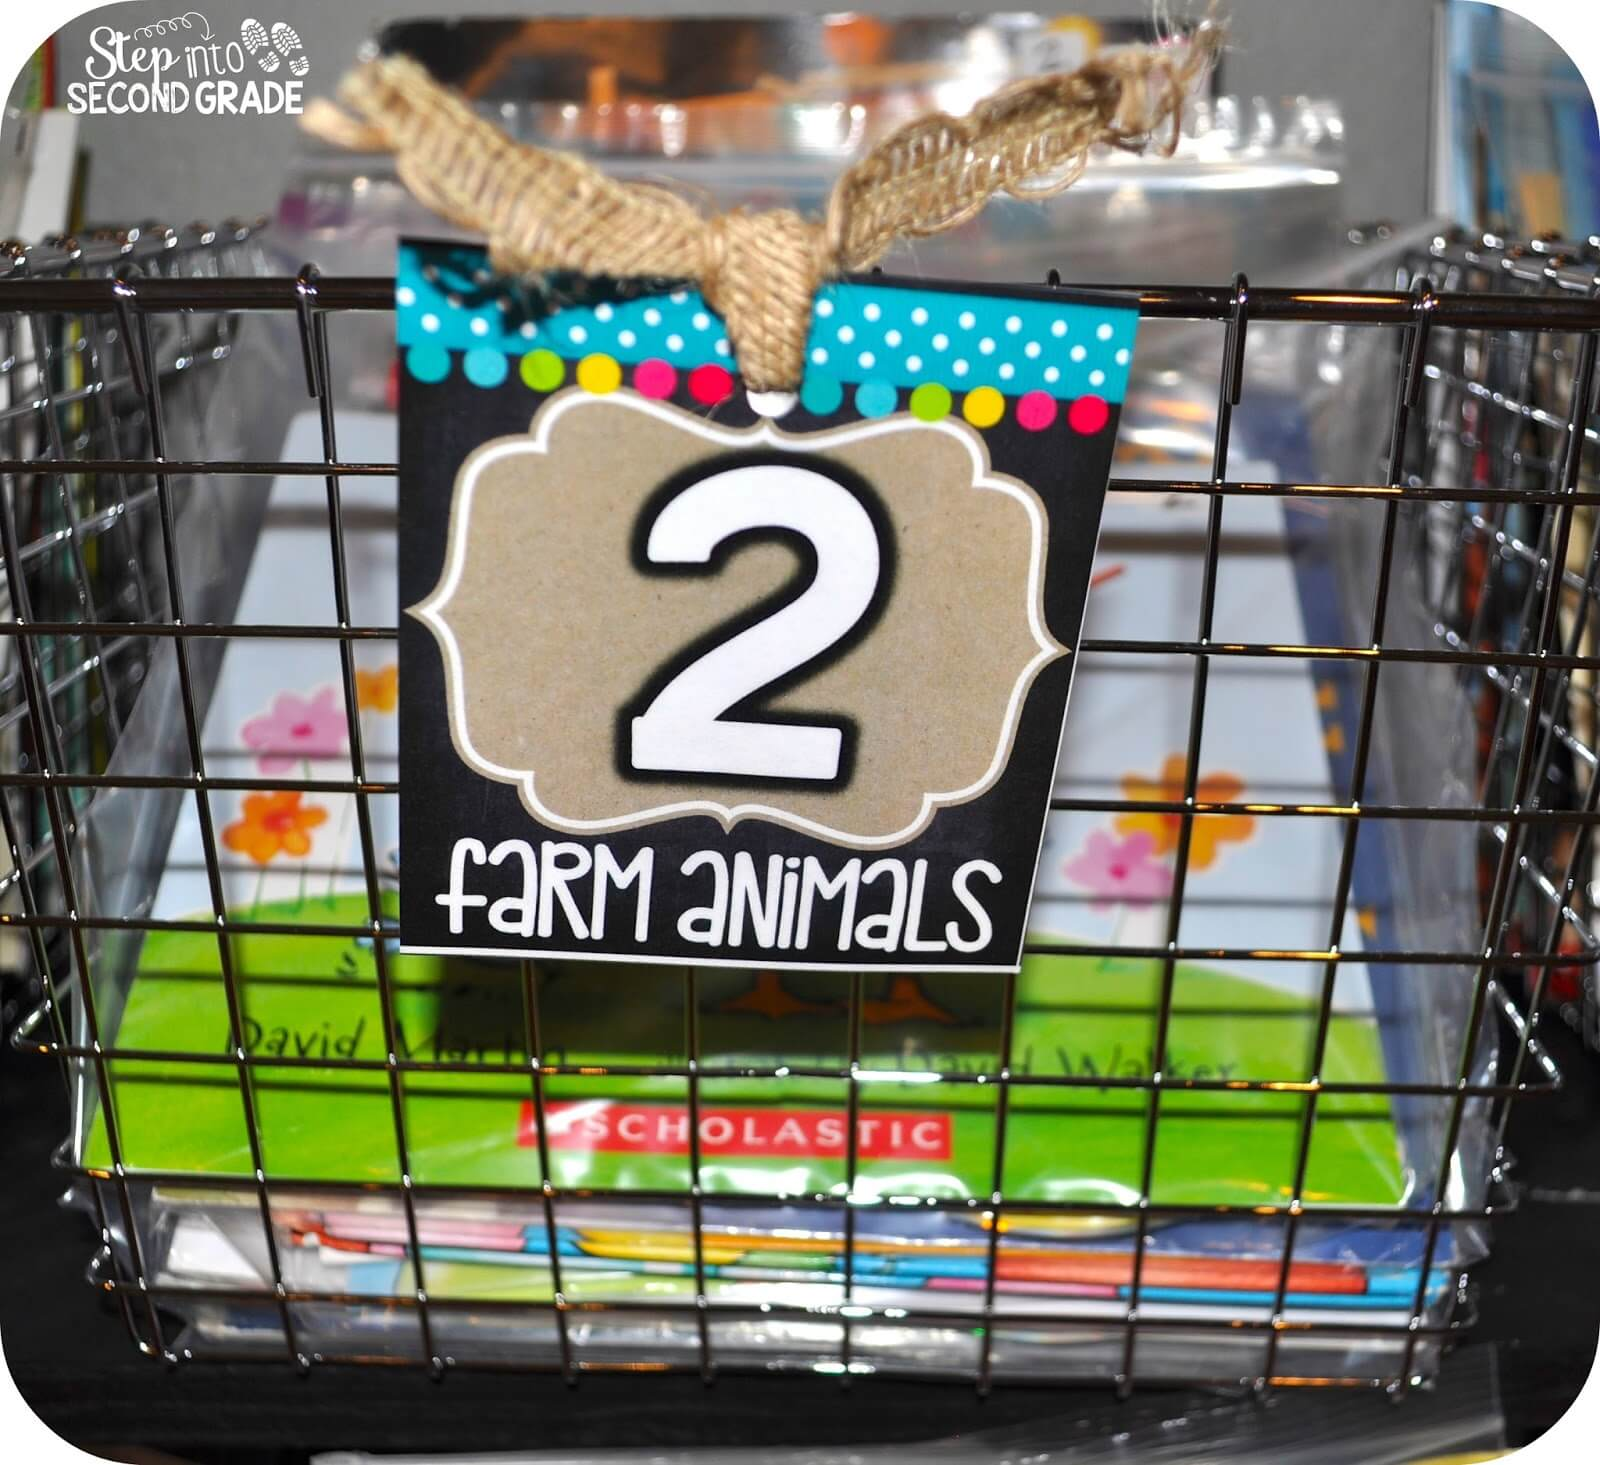 Setting up a Classroom Library - Step into 2nd Grade